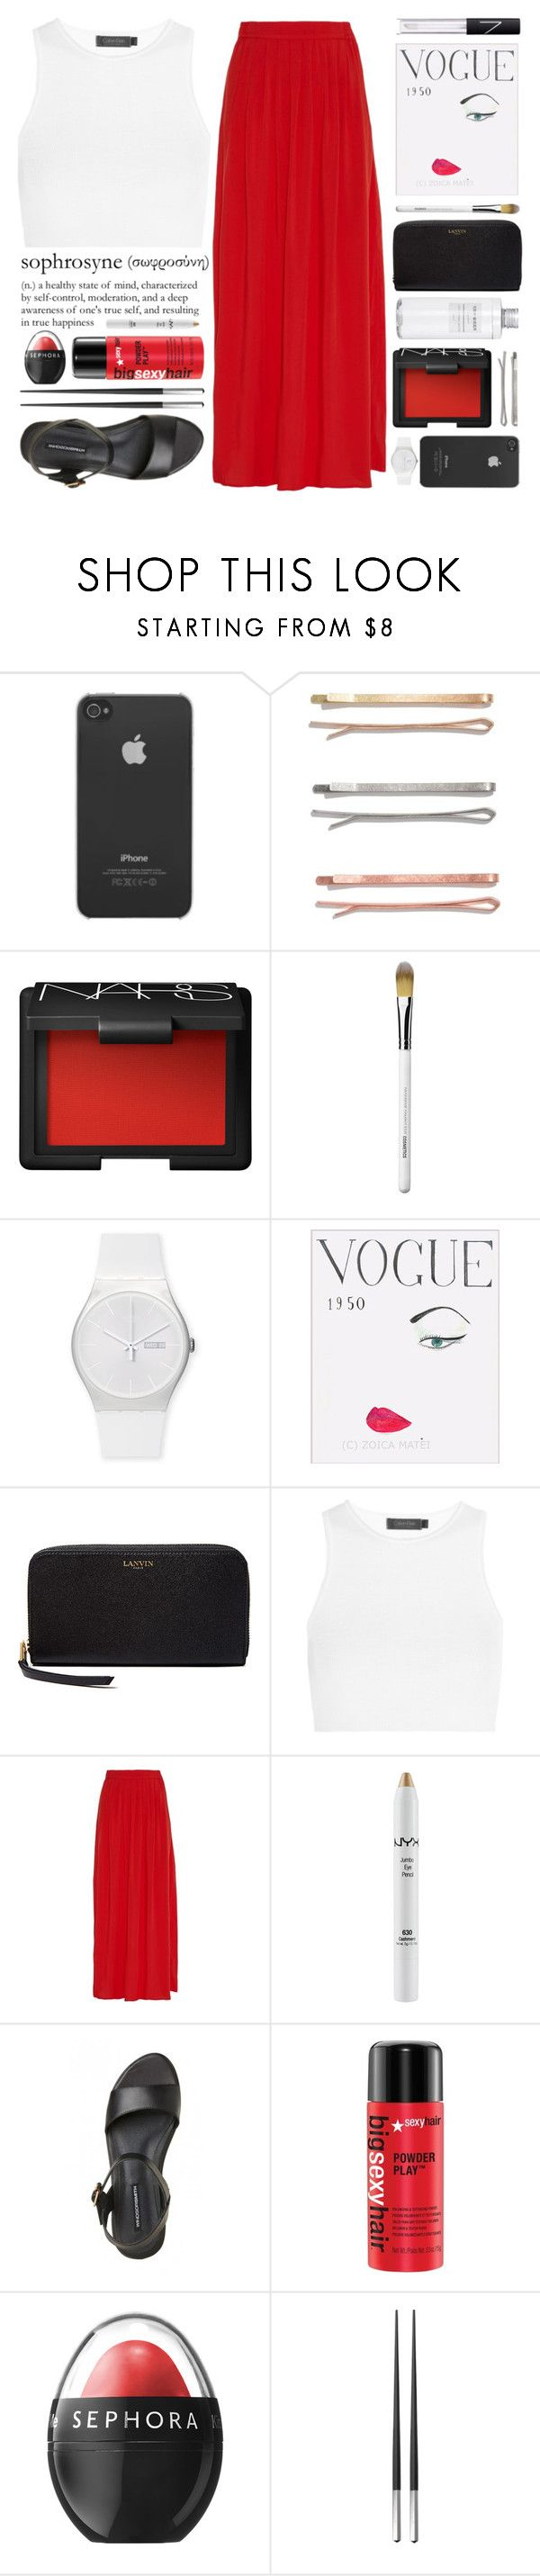 """""""NOBLE."""" by youadorejanee ❤ liked on Polyvore featuring Incase, Madewell, Muji, NARS Cosmetics, Obsessive Compulsive Cosmetics, Swatch, WALL, Lanvin, Calvin Klein Collection and NYX"""